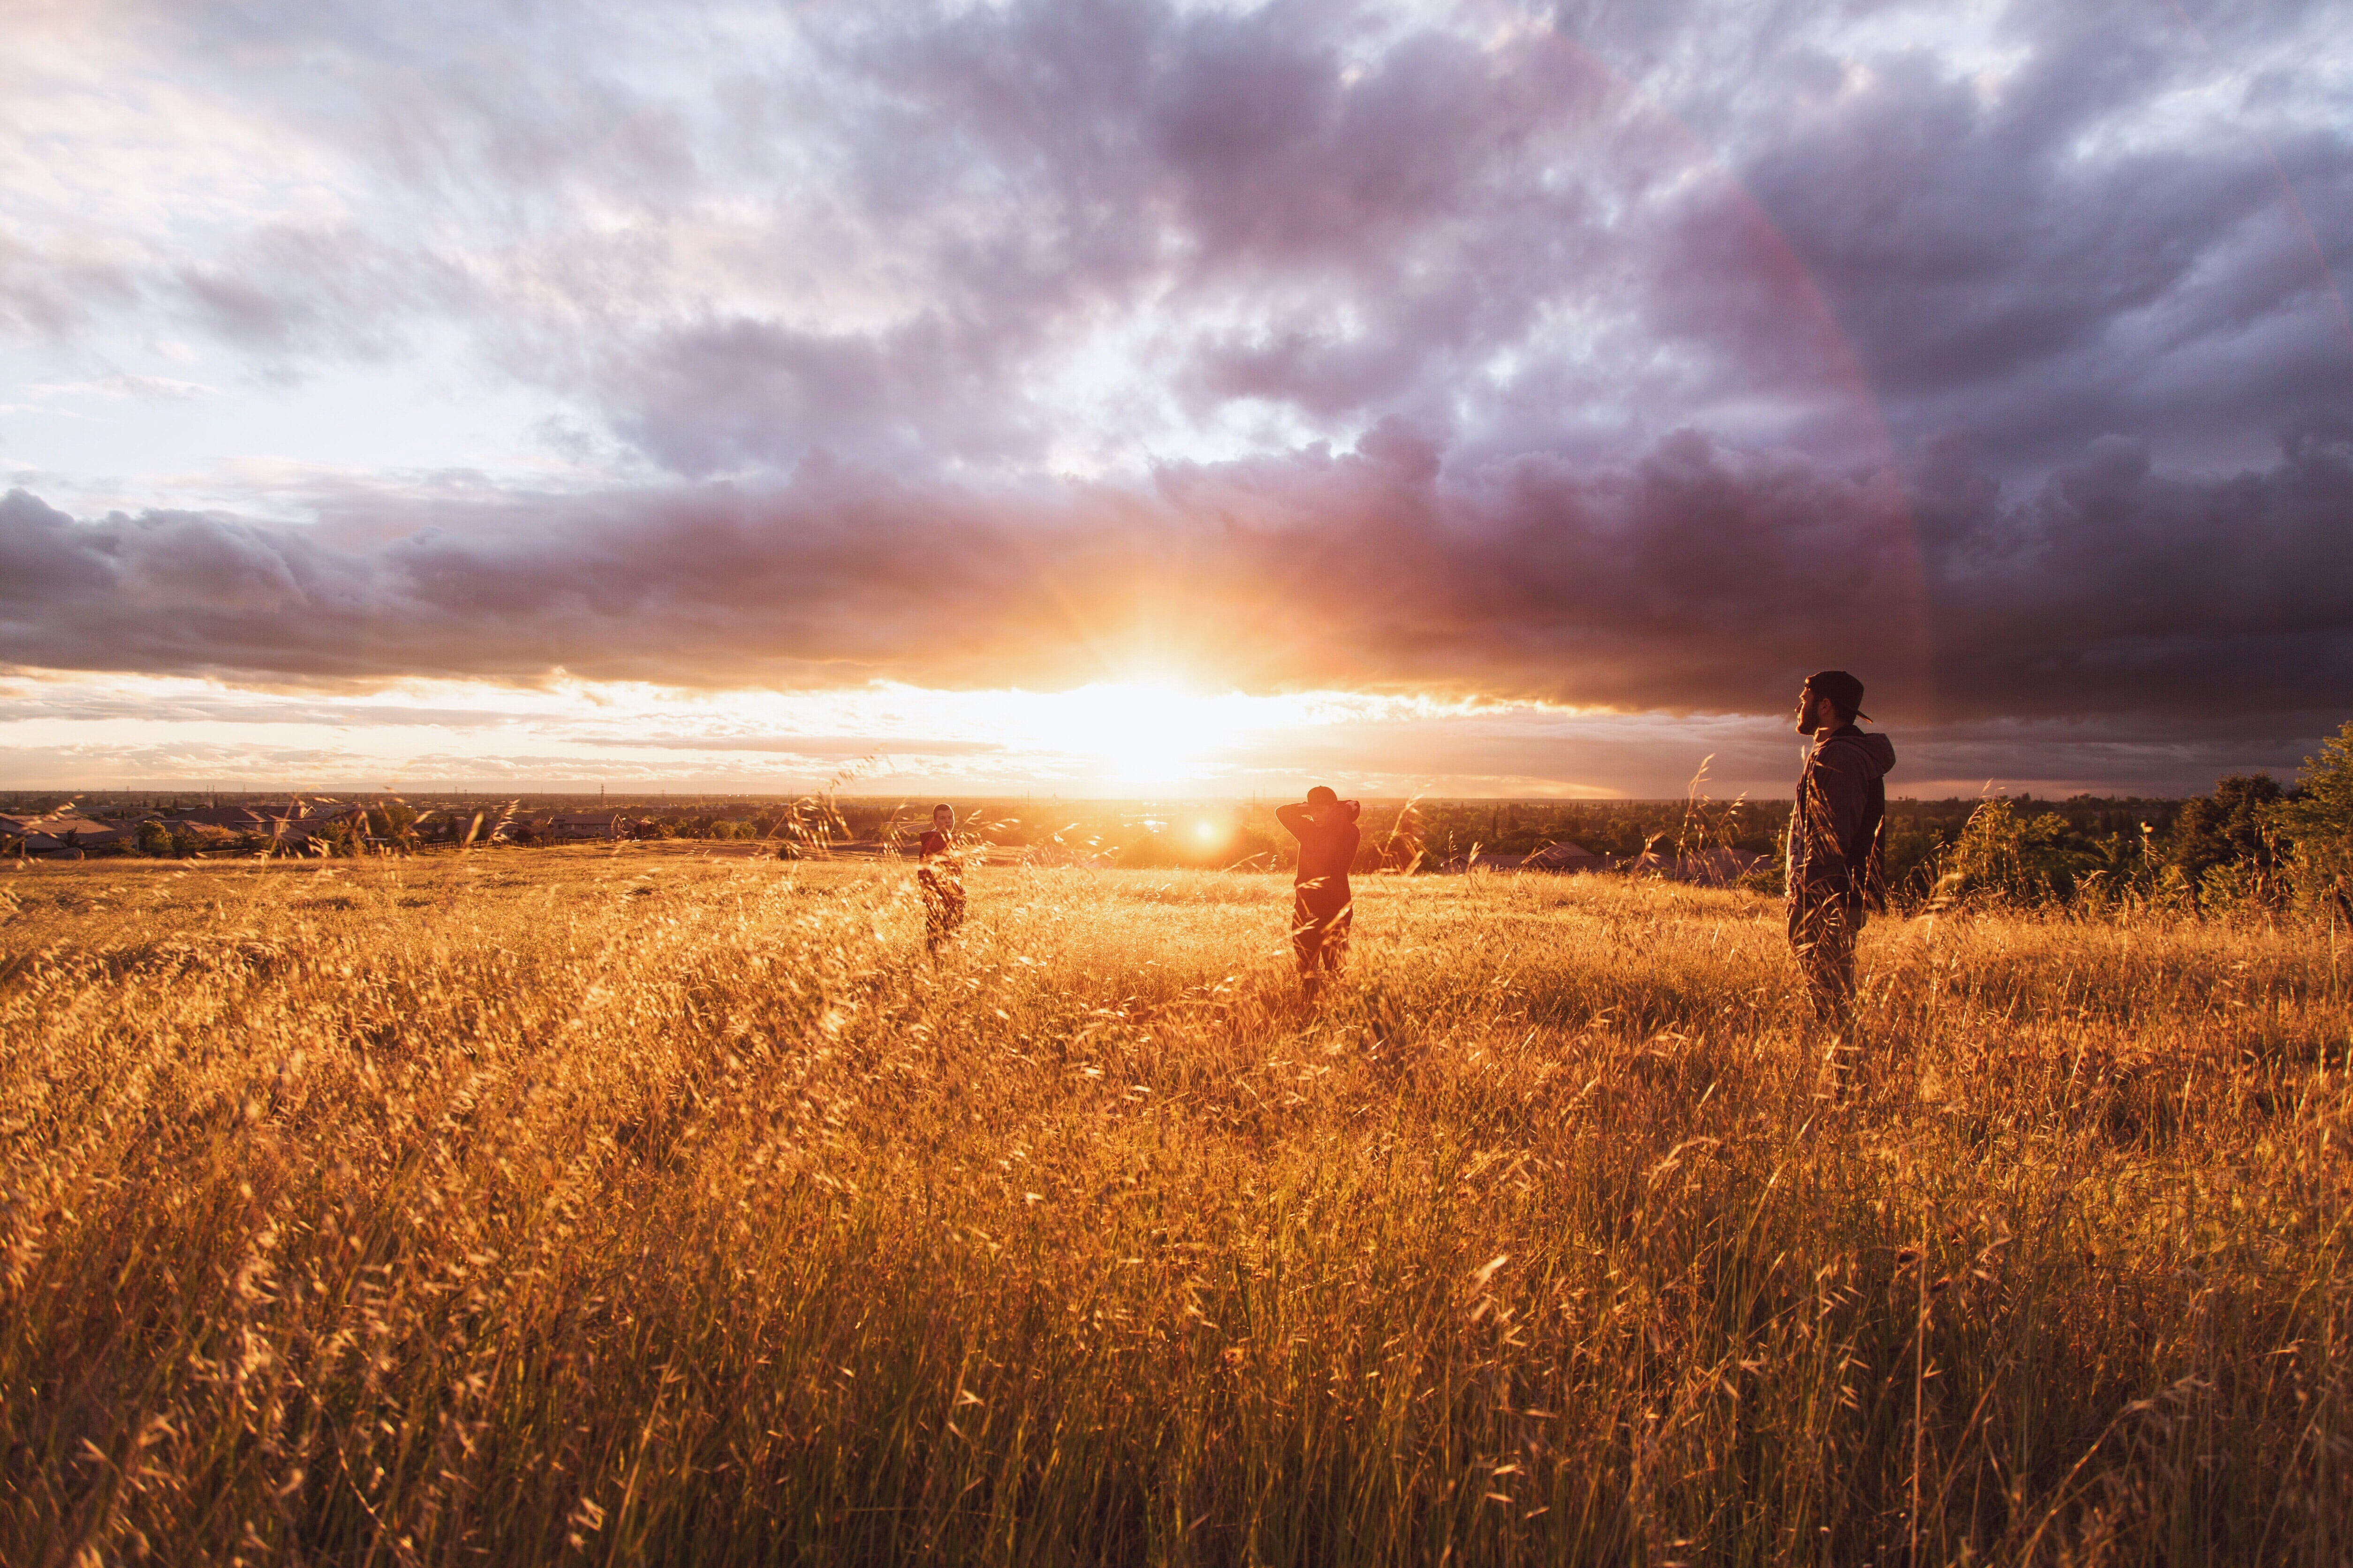 Three silhouettes standing in a golden field during sunset